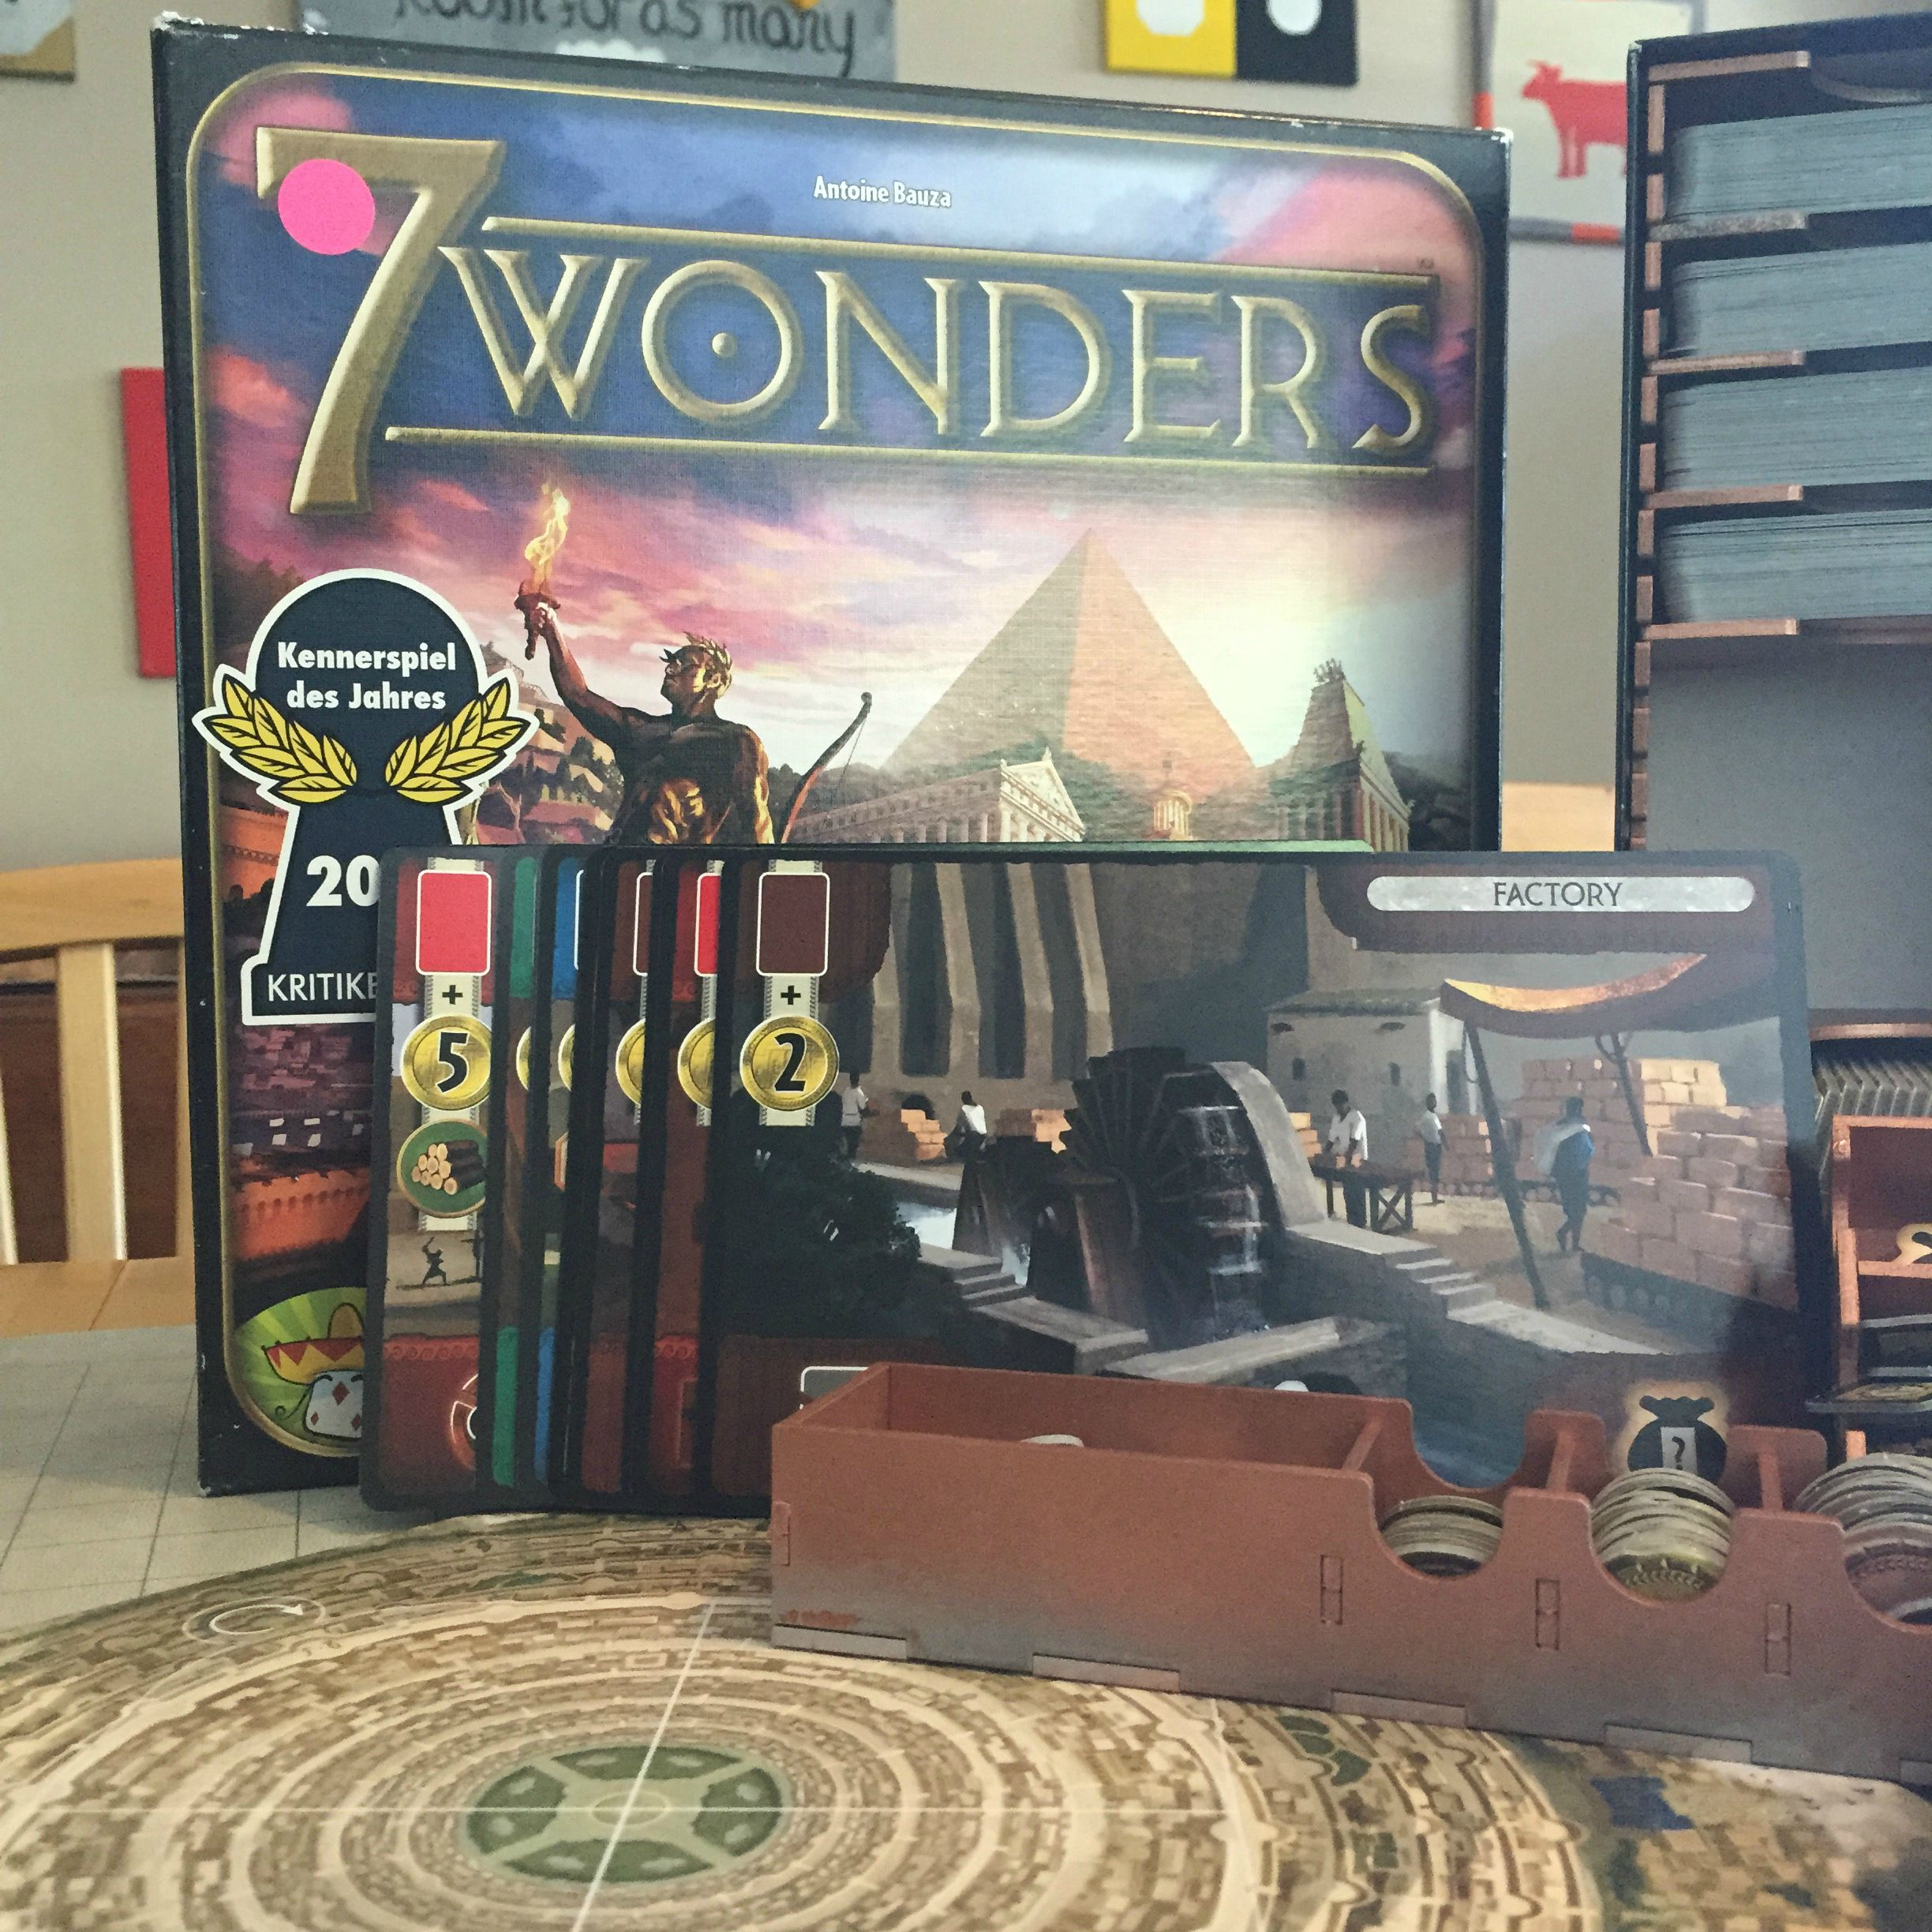 Tabletoplover_7_Wonders_board_game_insert_by_The_Broken_Token_001.jpg